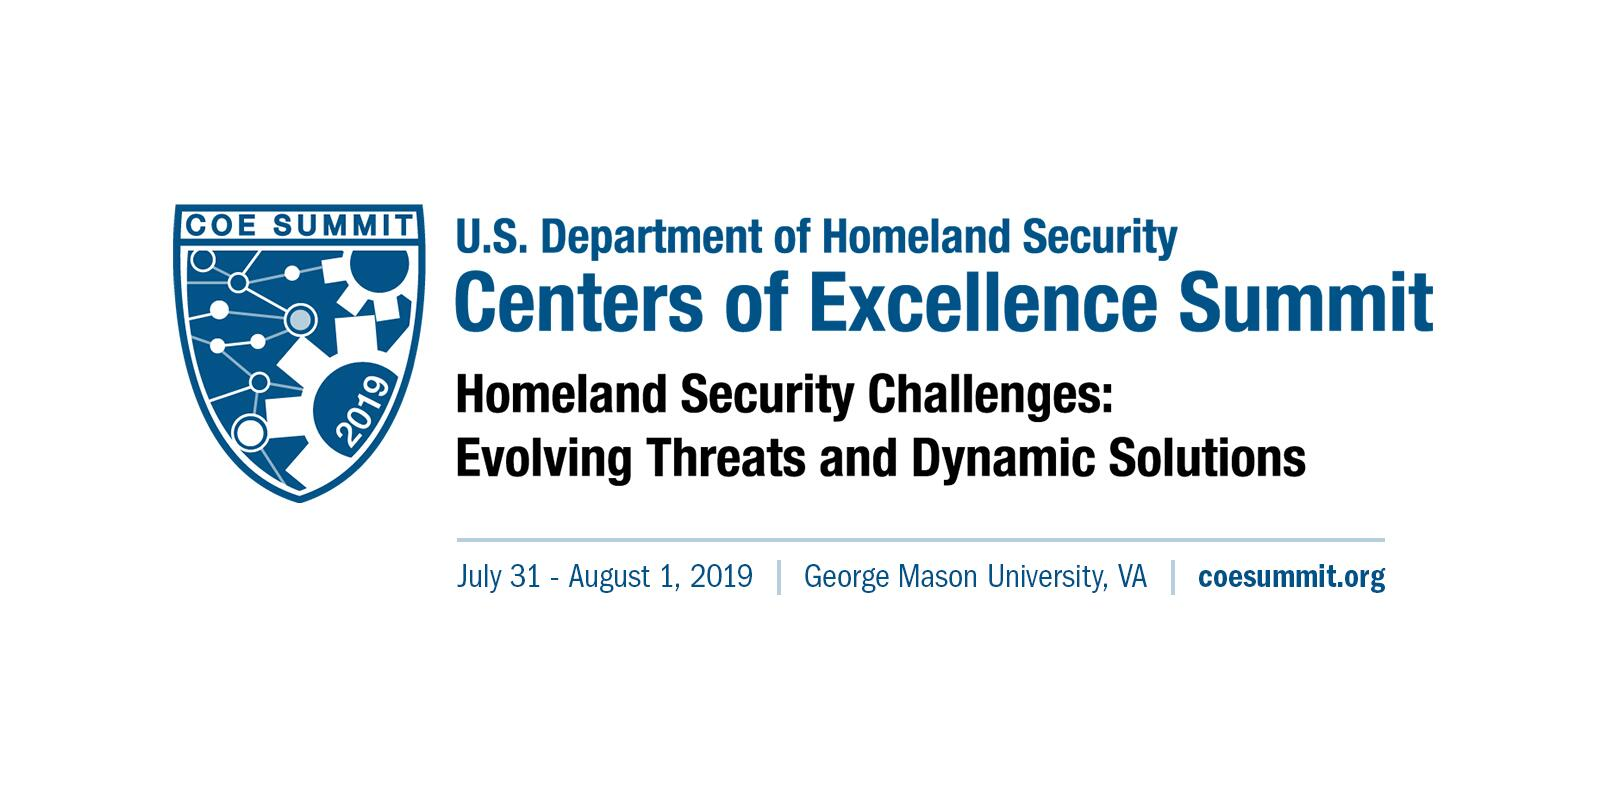 U.S. Department of Homeland Security. Centers of Excellence Summit. Homeland Security Challenges: Evolving Threats and Dynamic Solutions. July 31 to August 1, 2019. George Mason University, Va. Coesummit.org COE Summit 2019 logomark.